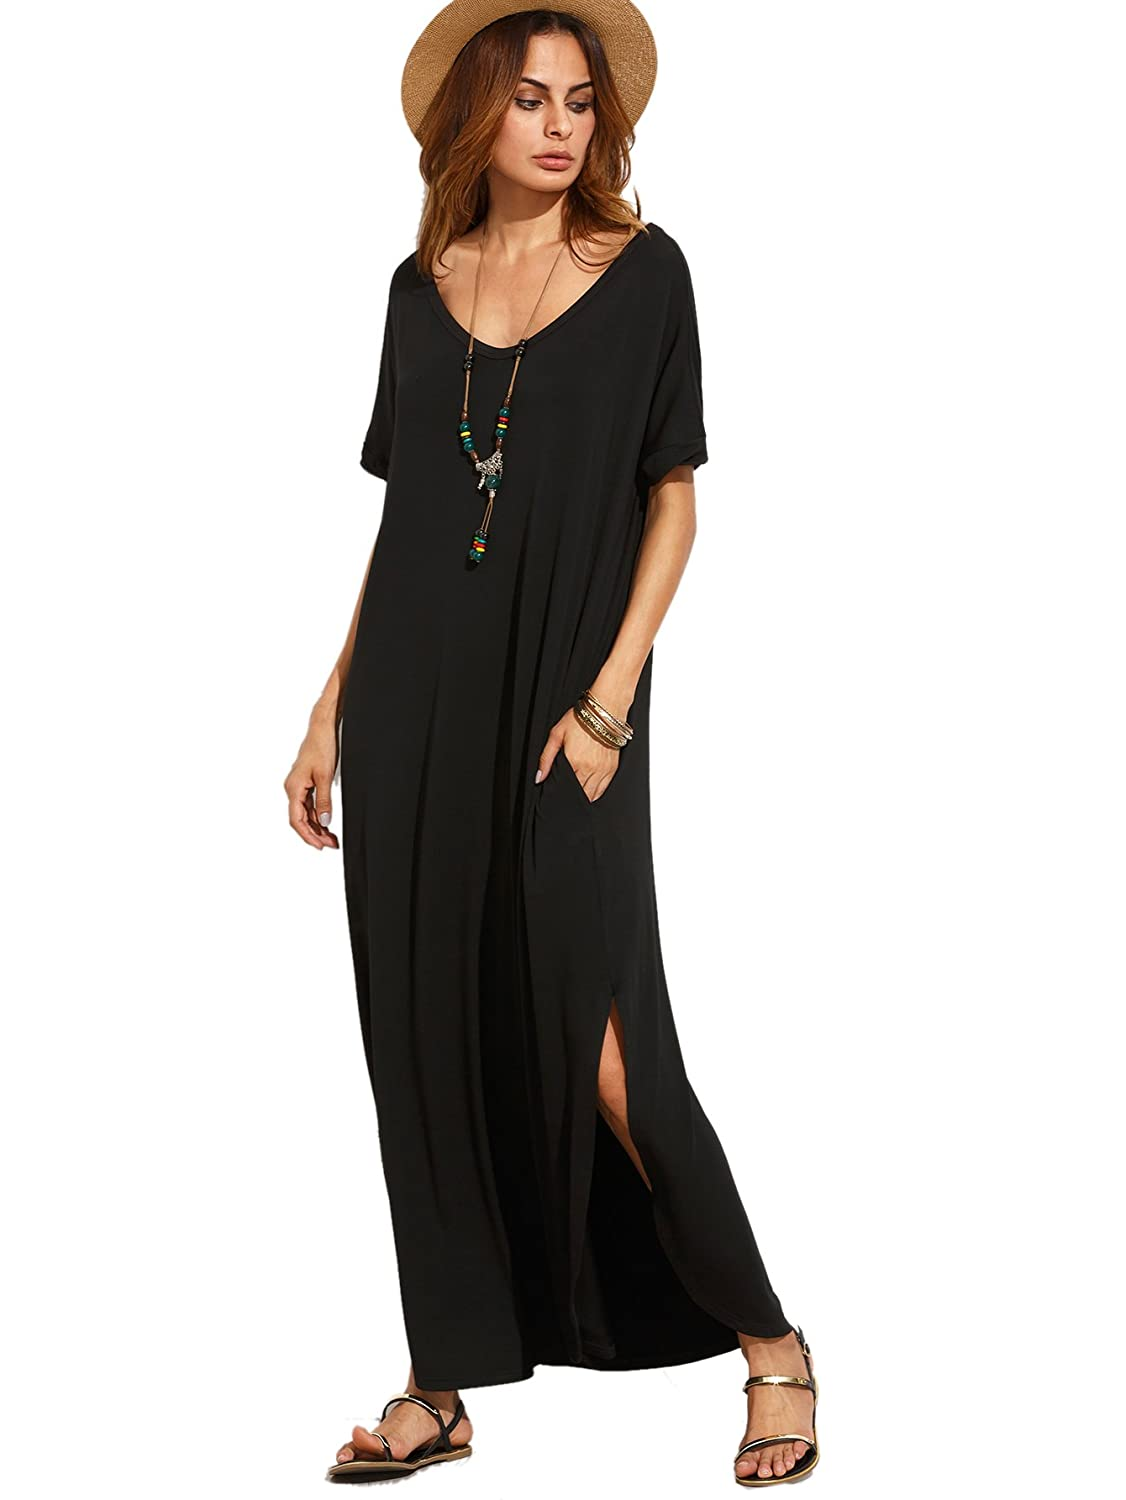 Women's Casual Comfy Loose Pocket Long Dress Short Sleeve ...